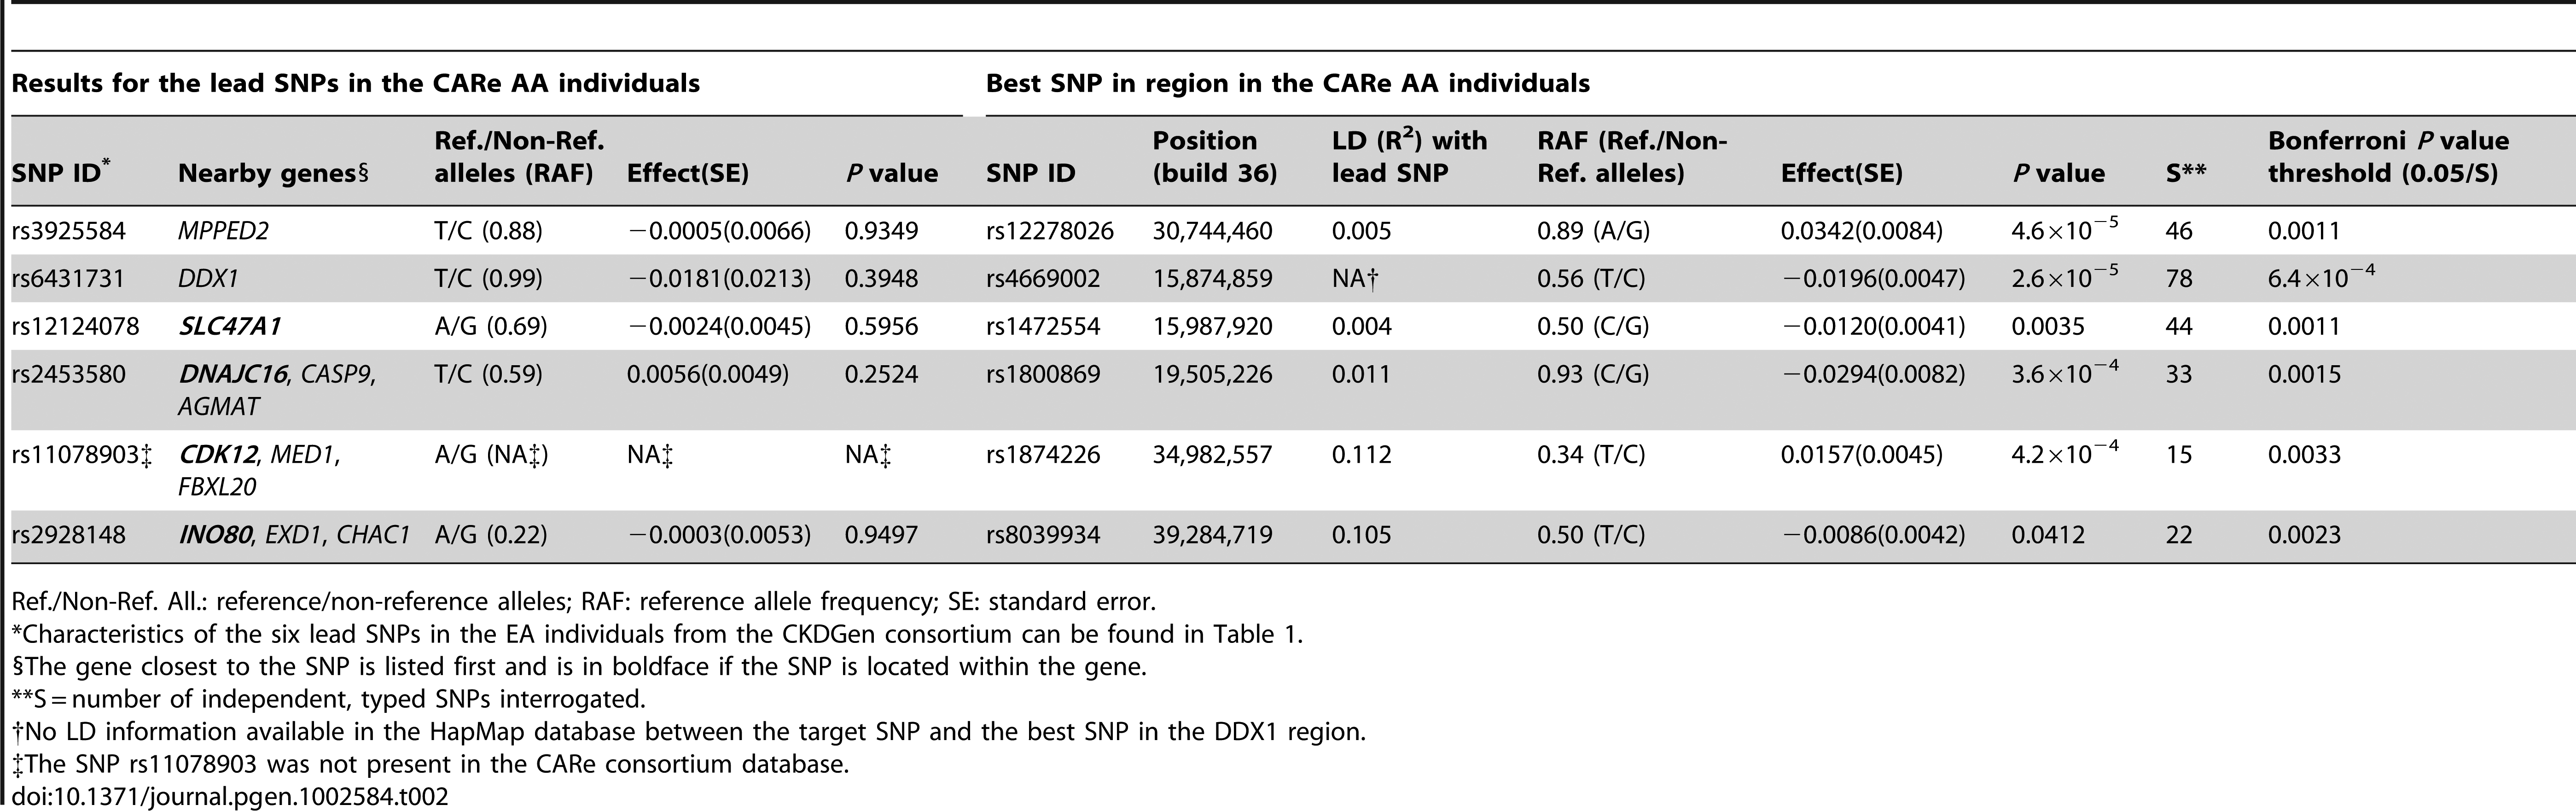 Interrogation of the six novel loci uncovered in the European ancestry (EA) individuals (CKDGen consortium) in individuals of African ancestry (AA) from the CARe consortium for the trait eGFRcrea.